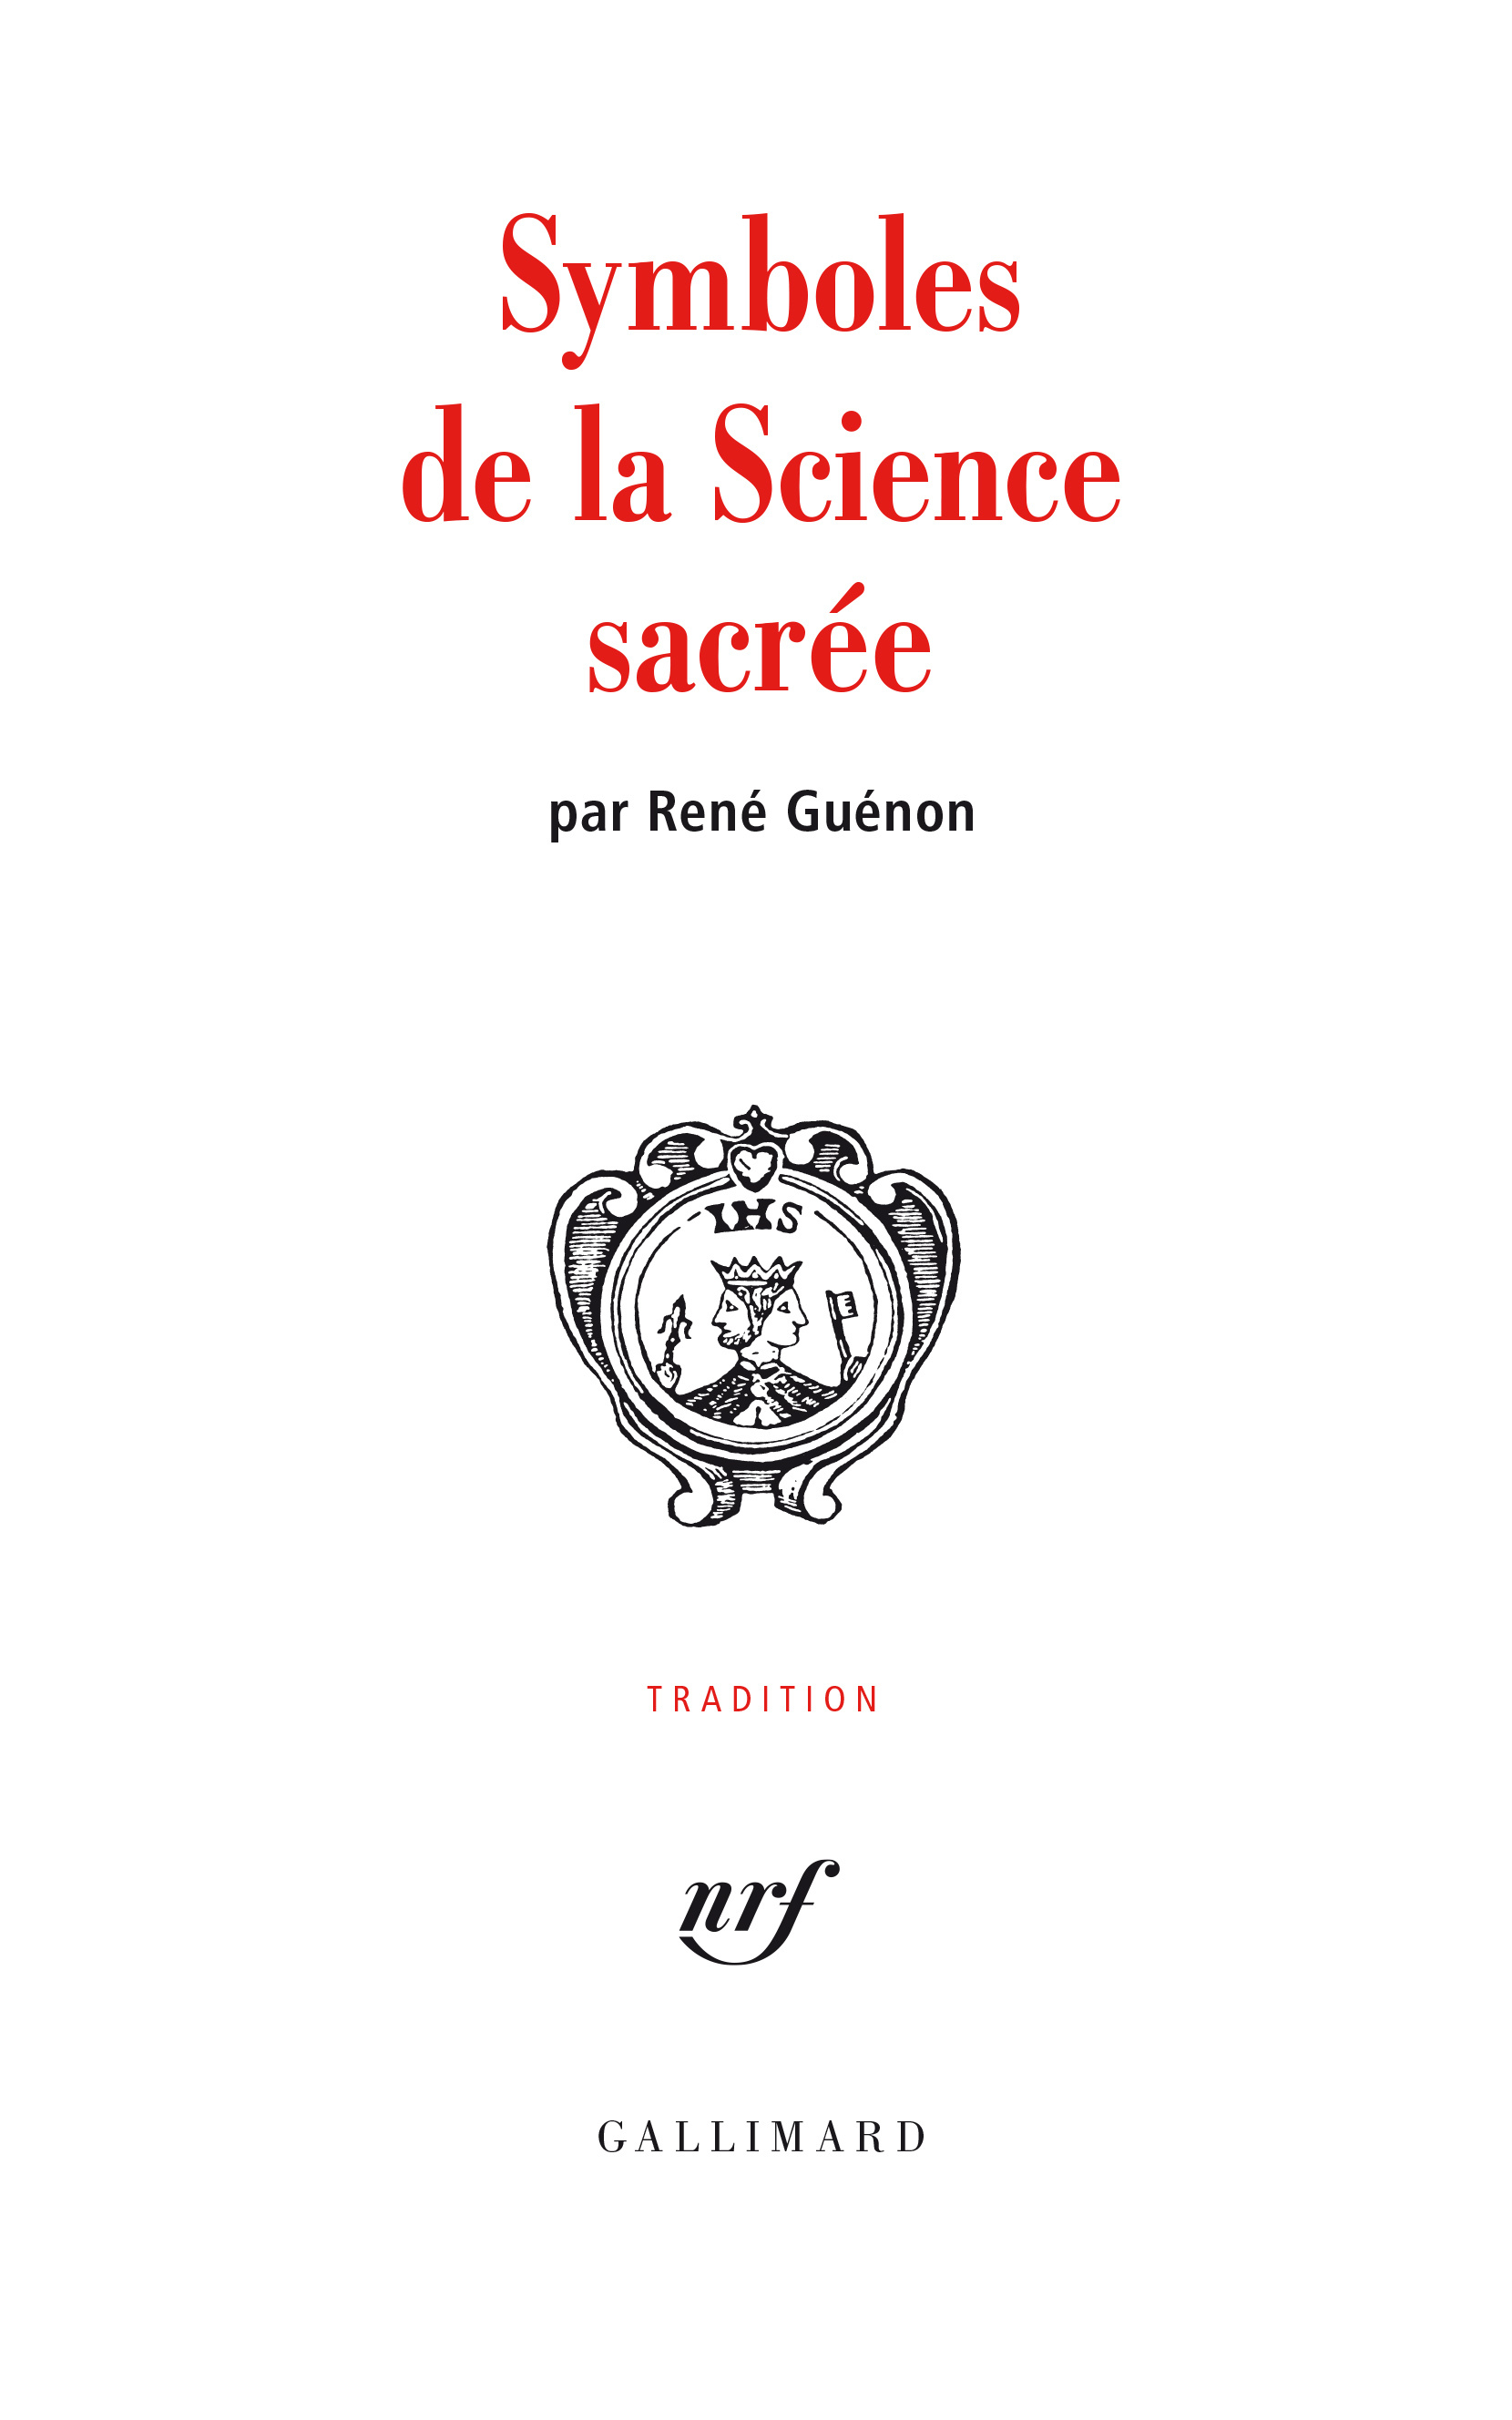 SYMBOLES DE LA SCIENCE SACREE